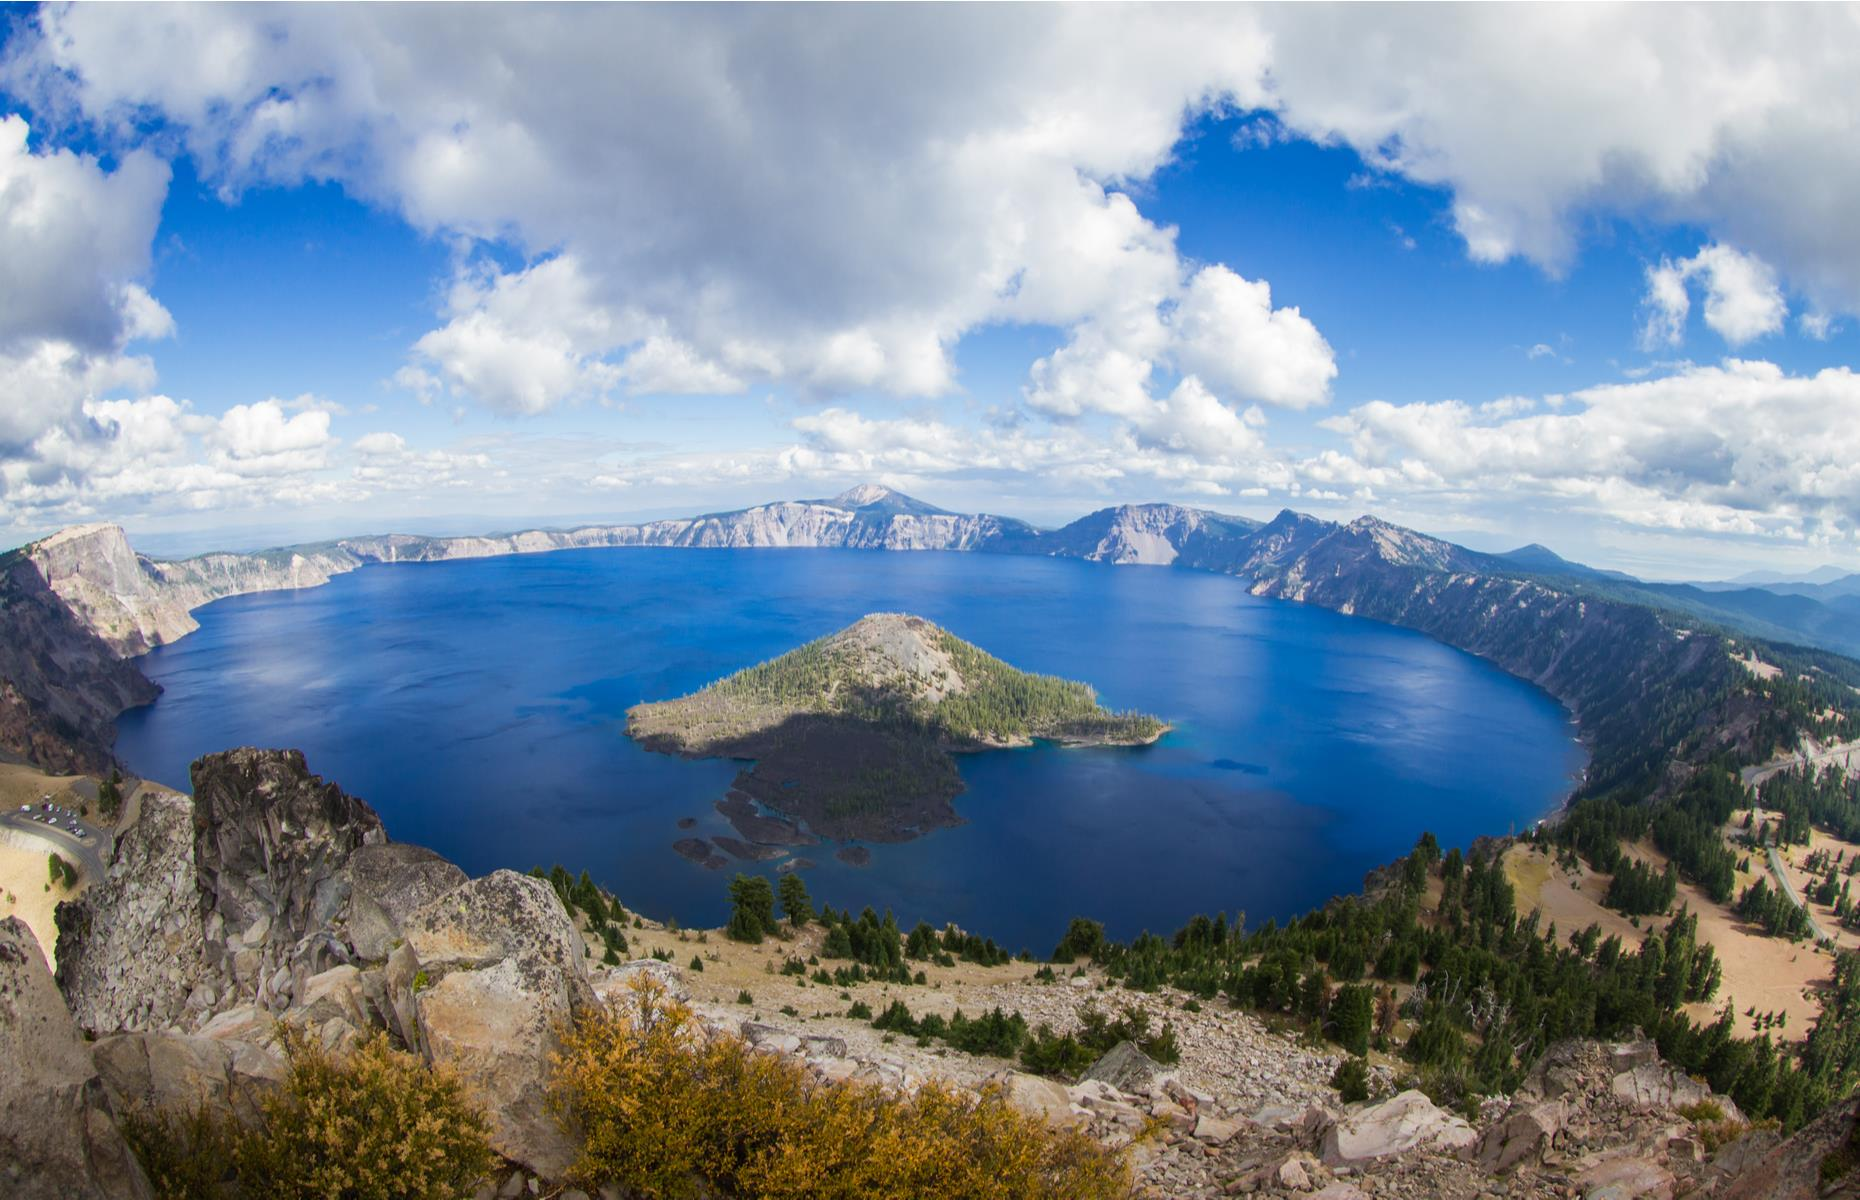 Slide 28 of 31: America's deepest lake (a staggering 1,943 foot/592m) is often the most camera-shy. In winter, it can hide in a wall of fog but if it clears, the blindingly blue water of this caldera basin is breathtaking. Now discover the world's most beautiful waterfalls.